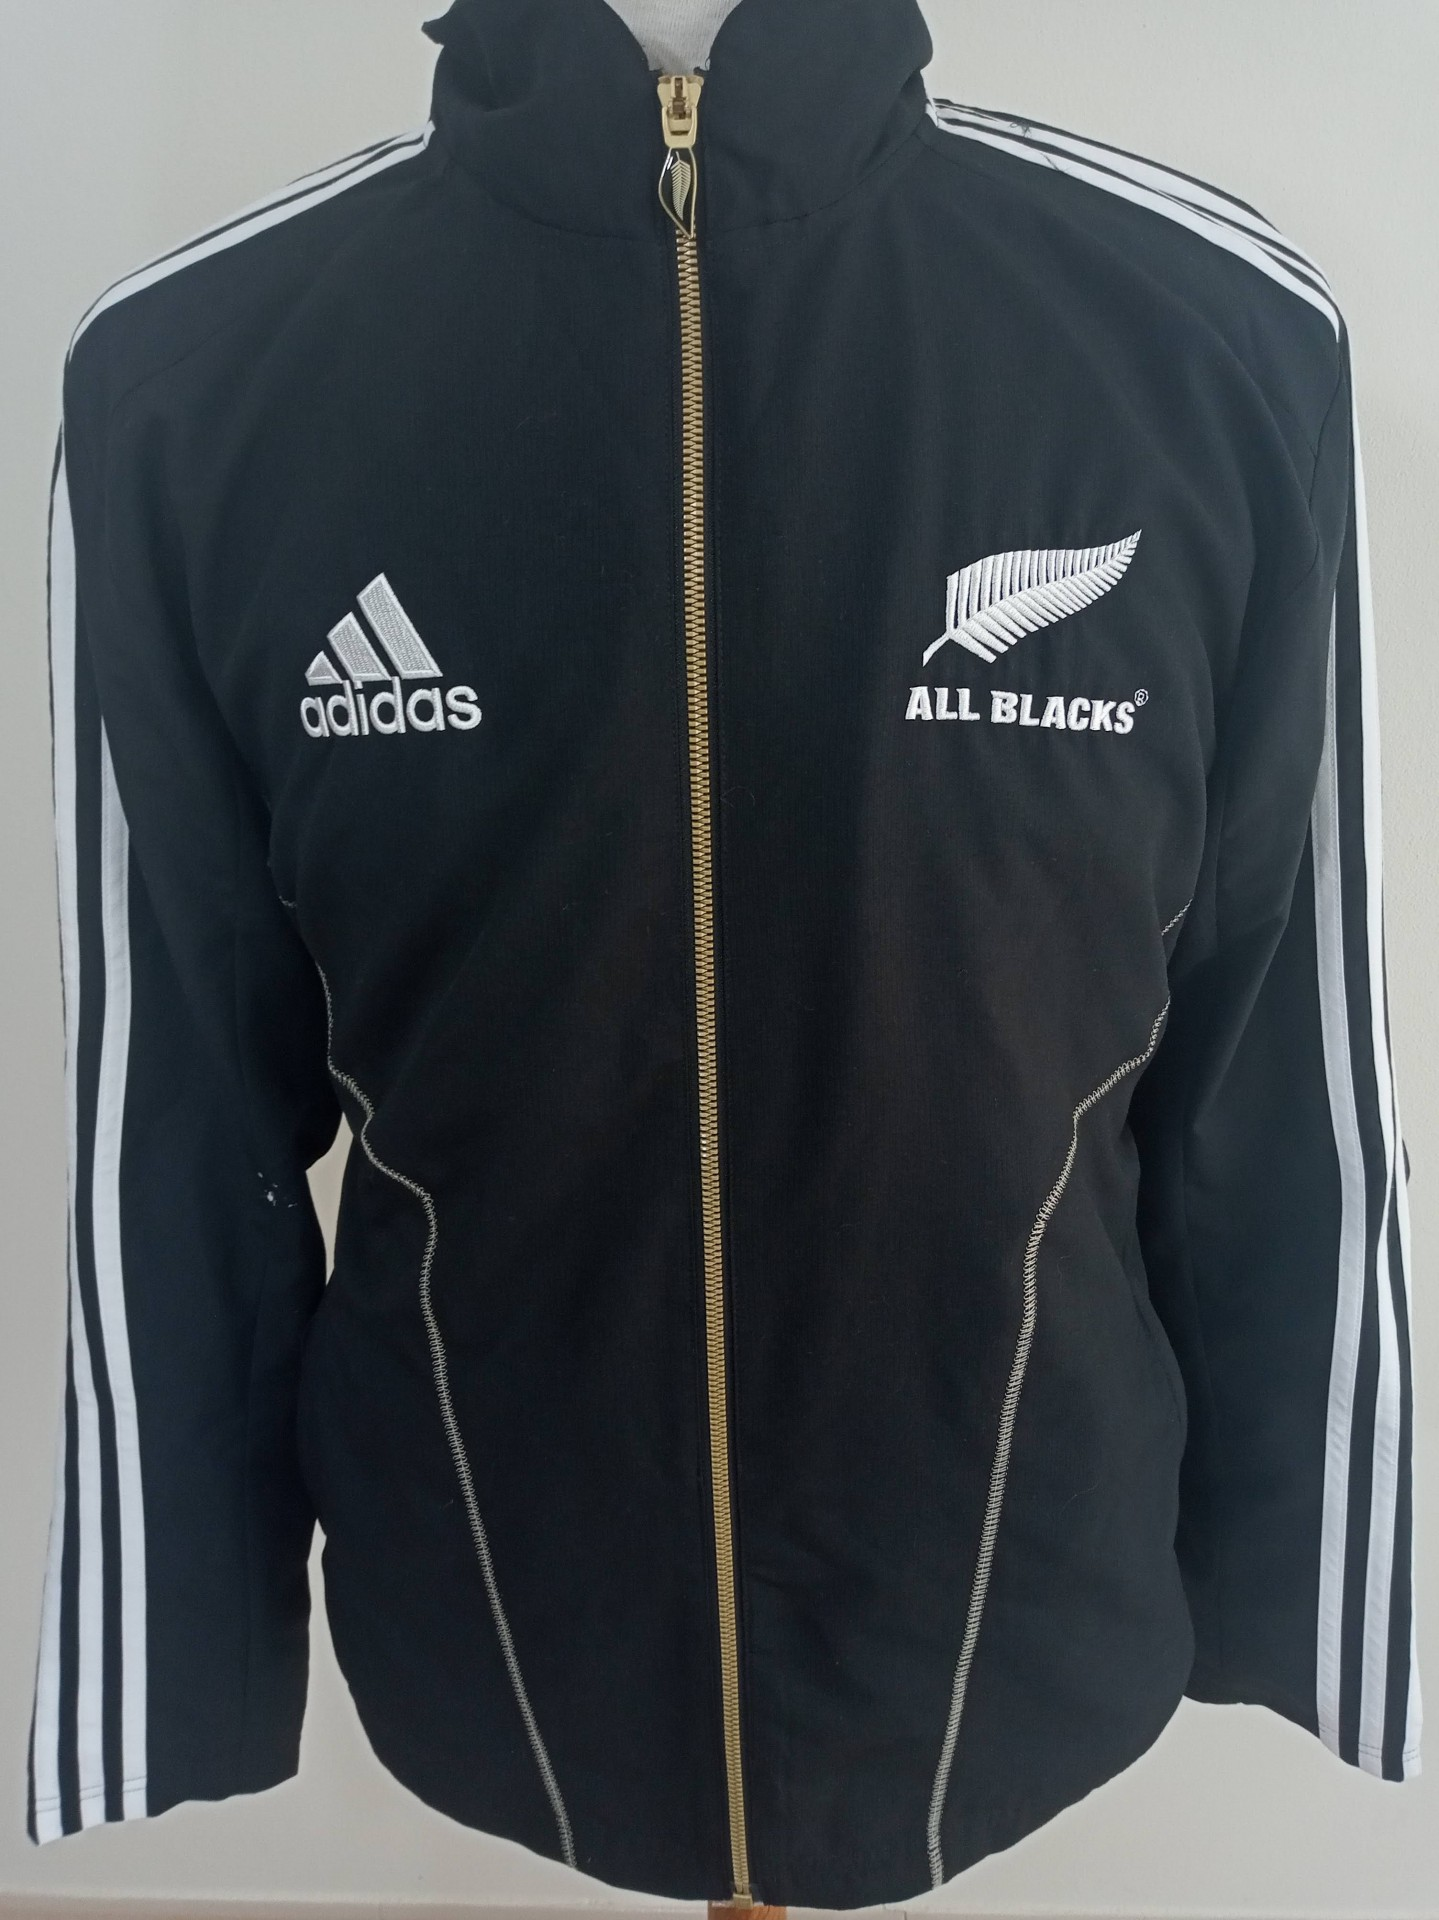 New Zealand All Blacks Rugby Jacket 2011 (L) Adidas Casaco | Vintage Sports Classic Football Shirts Jerseys Camisolas Futebol NBA